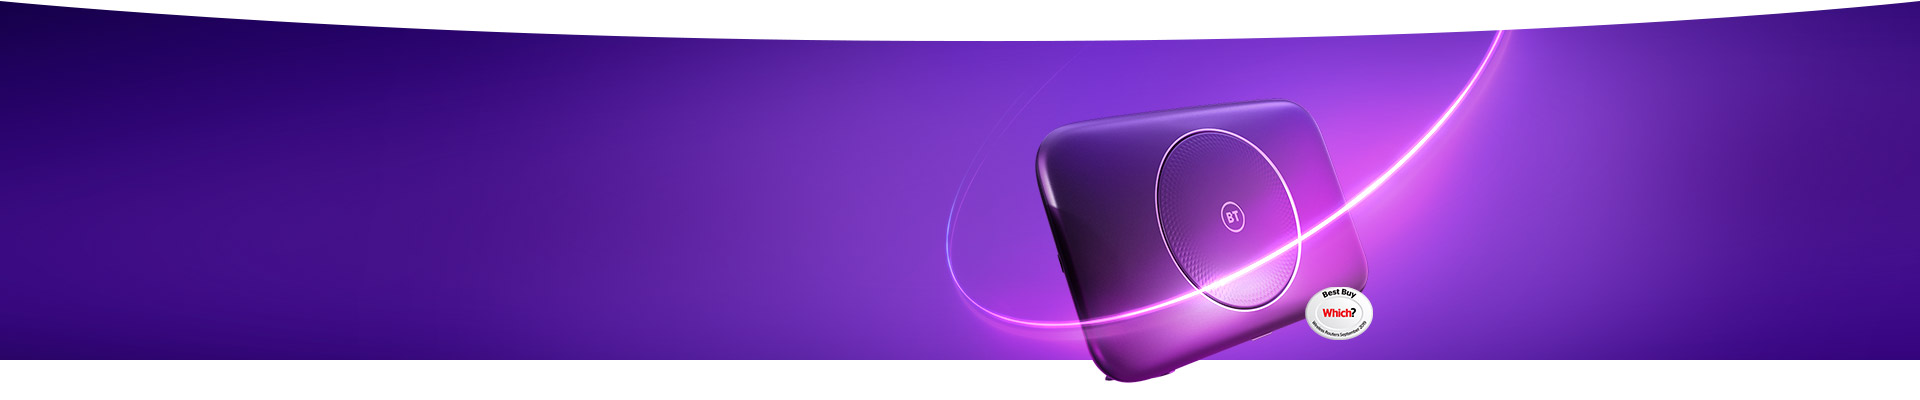 BT broadband comes with a Smart Hub that's a Which? Best Buy